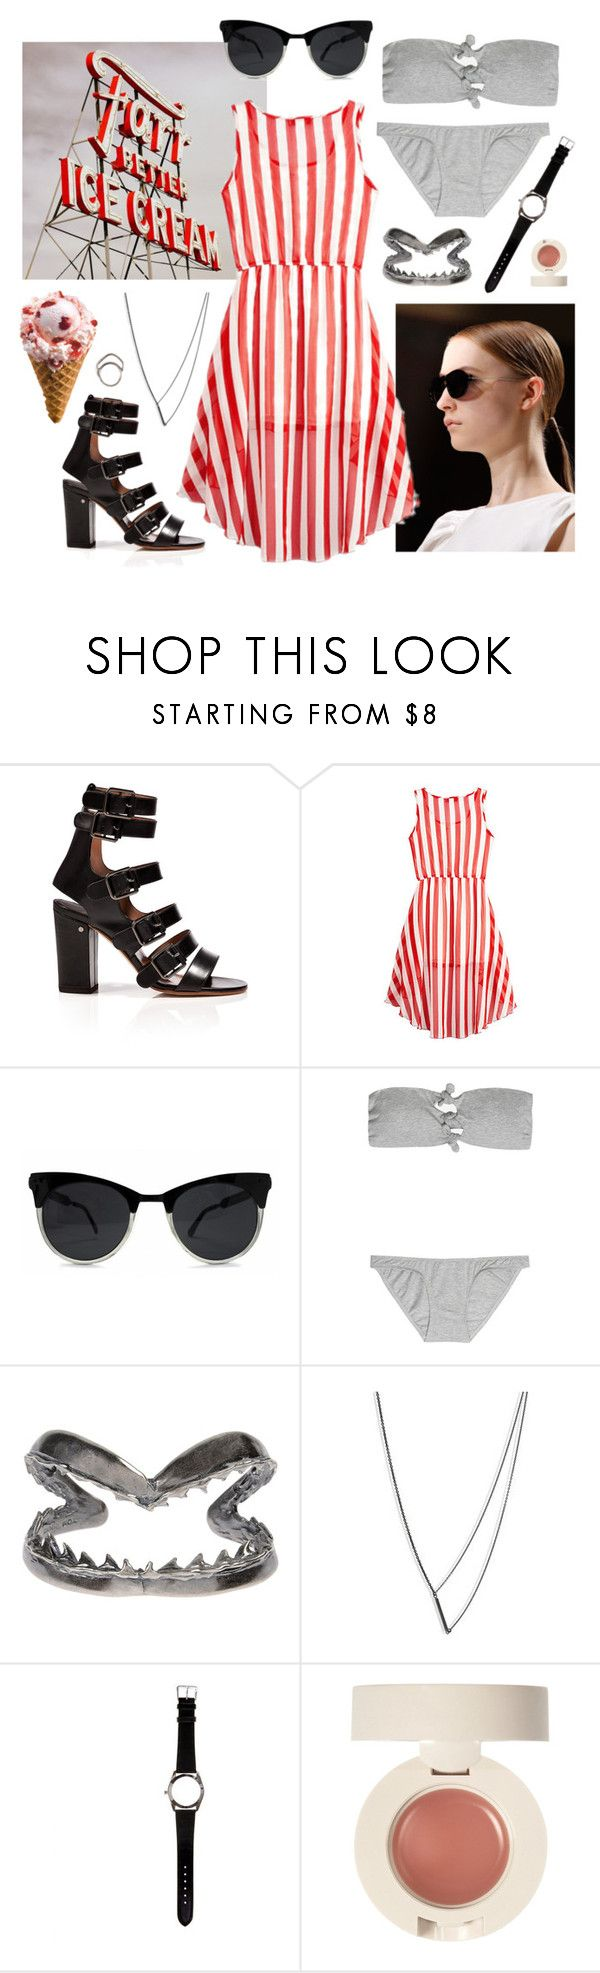 """""""Untitled #1534"""" by doxophobia ❤ liked on Polyvore featuring Laurence Dacade, Dries Van Noten, Zimmermann, Tom Binns, Naoko Ogawa, Maison Margiela and Iosselliani"""